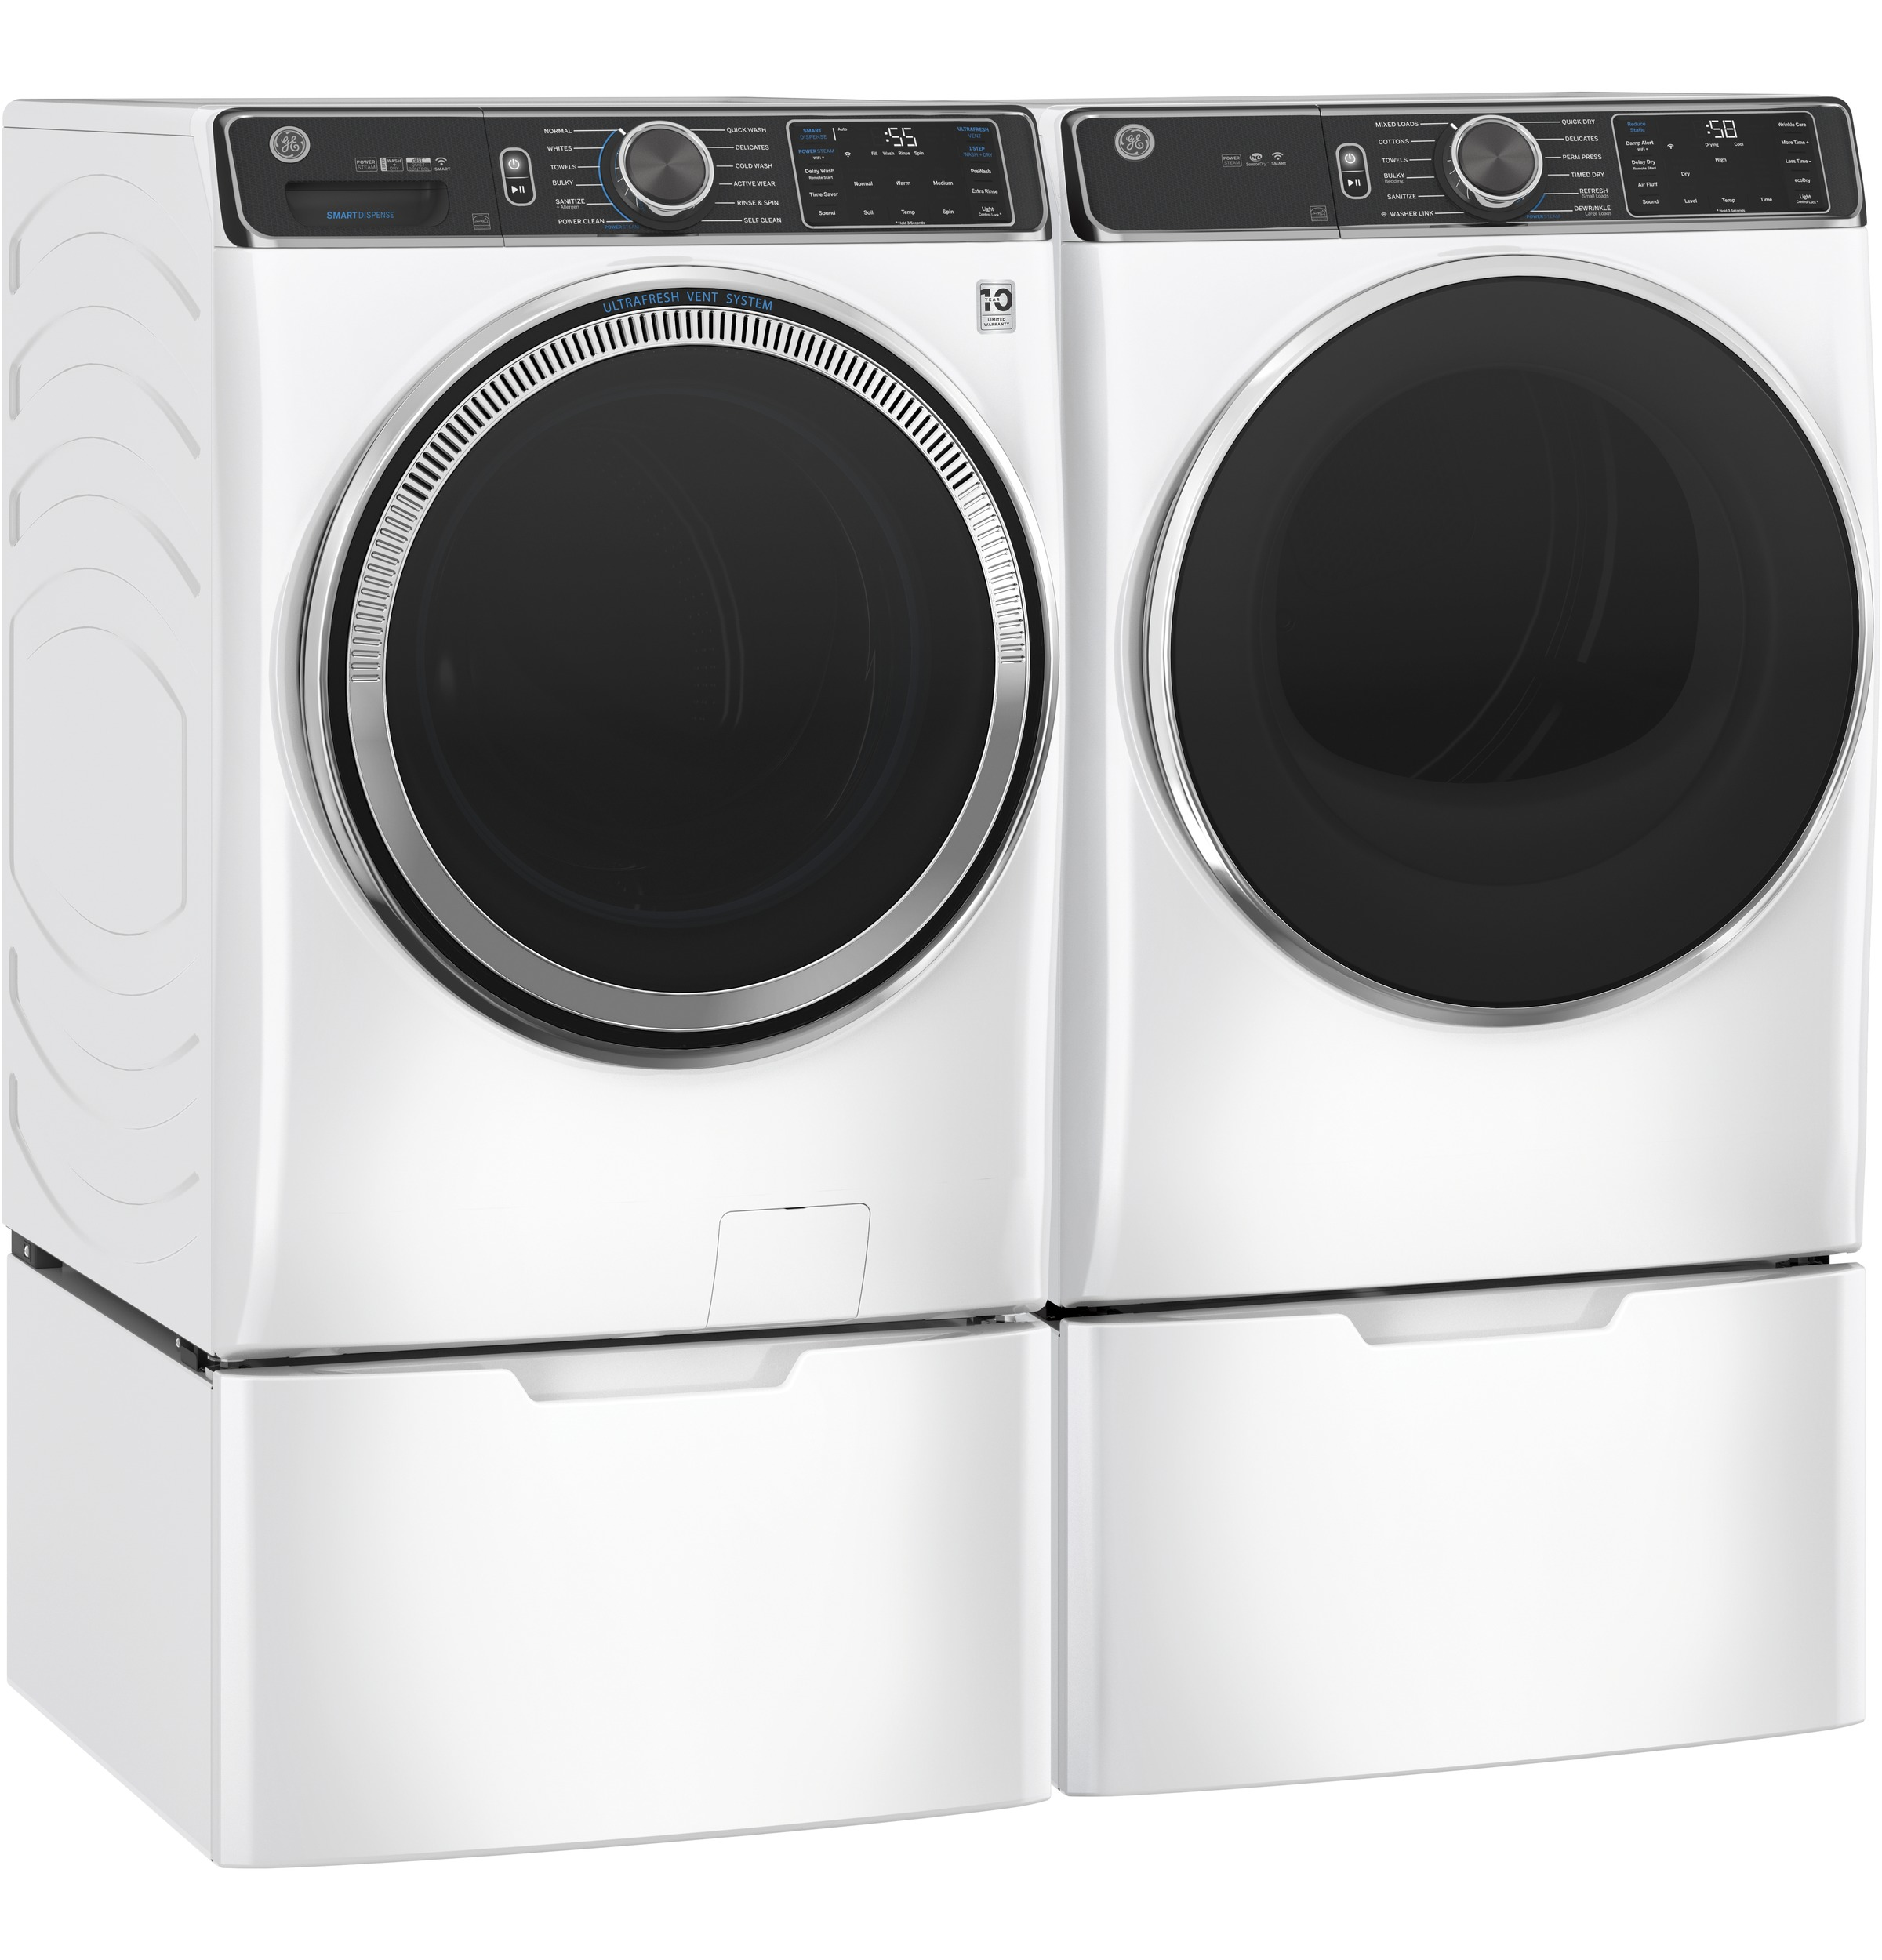 Model: GFW850SSNWW   GE GE® 5.0 cu. ft. Capacity Smart Front Load ENERGY STAR® Steam Washer with SmartDispense™ UltraFresh Vent System with OdorBlock™ and Sanitize + Allergen